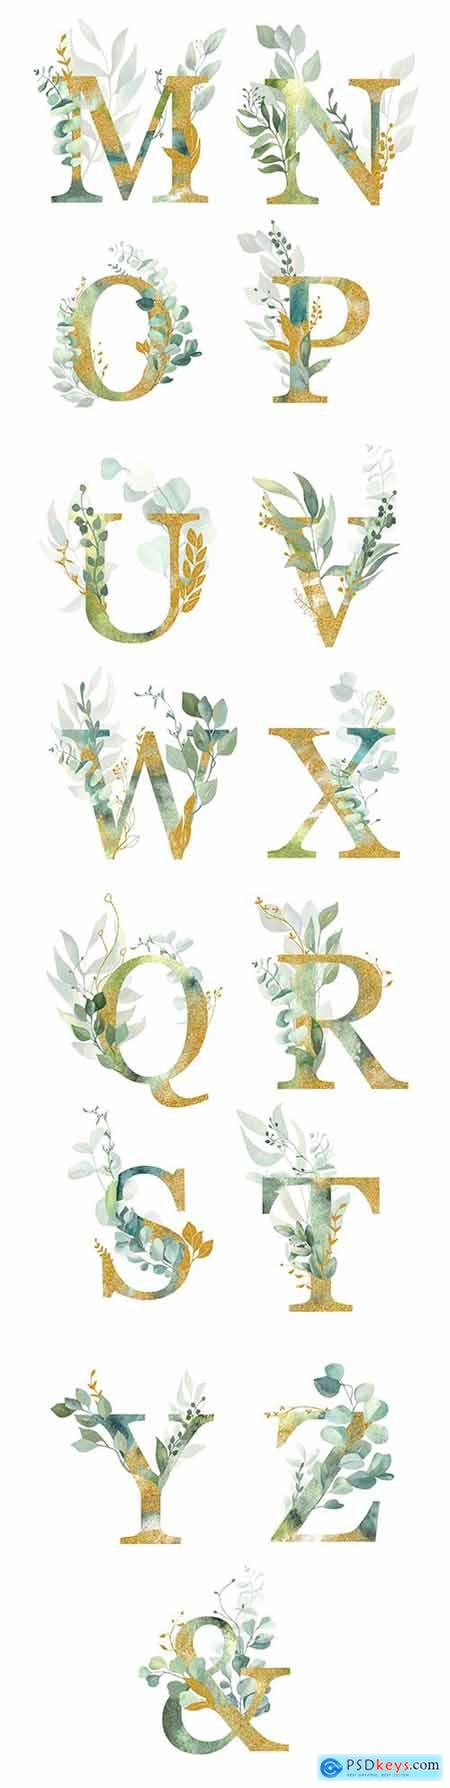 Gold letters with decorative leaves for design